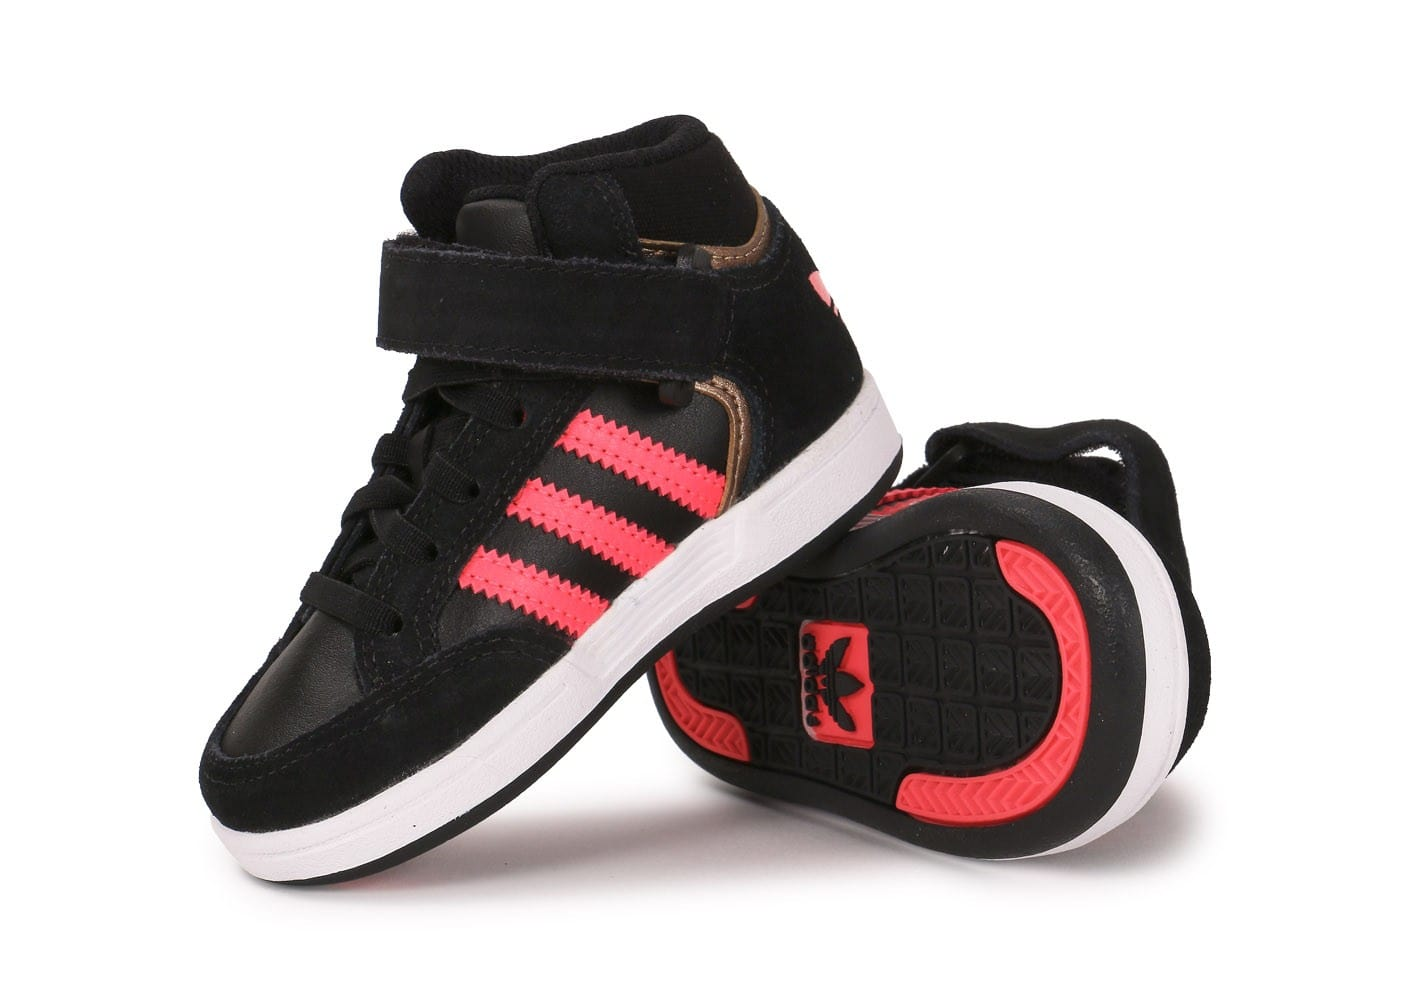 adidas varial mid b b noire rose chaussures adidas chausport. Black Bedroom Furniture Sets. Home Design Ideas